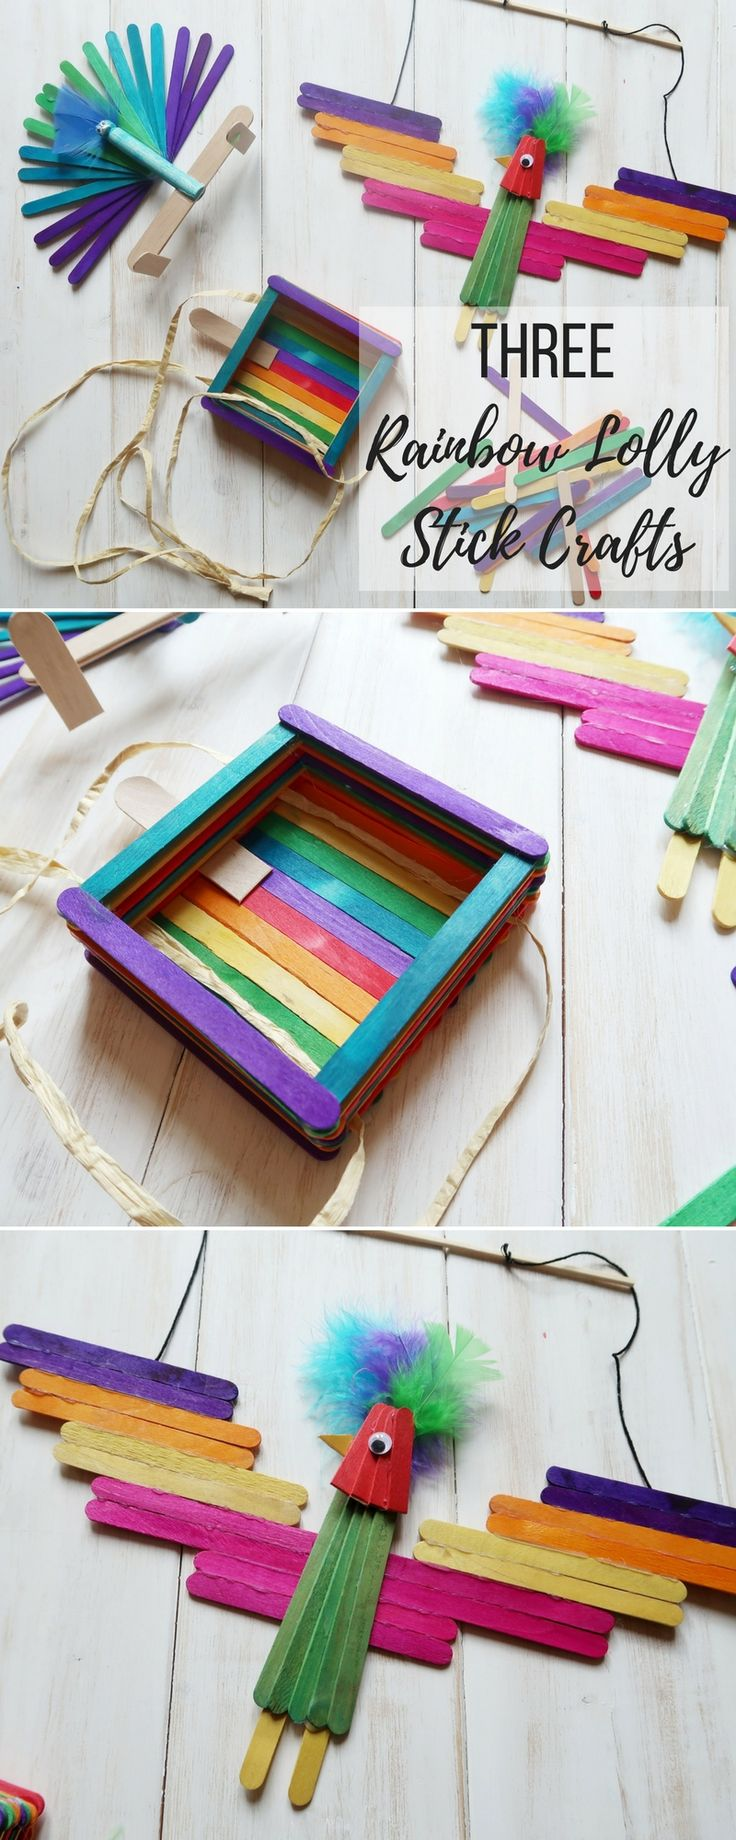 3 Bird Themed Rainbow Lolly Stick Crafts. How to make 3 bird crafts with rainbow lolly sticks - a bird feeder, parrot and peacock. Colourful crafts that kids will love to play with #crafts #kids #lollysticks #popsiclesticks